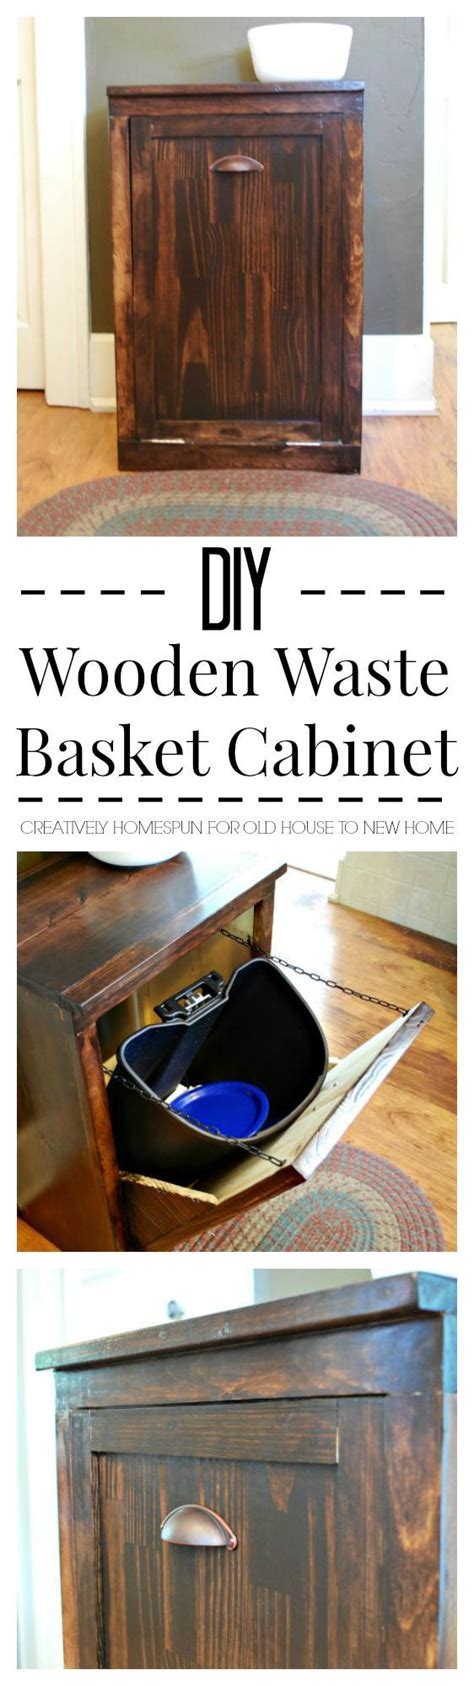 Waste Basket Cabinet by Diy Wooden Waste Basket Cabinet